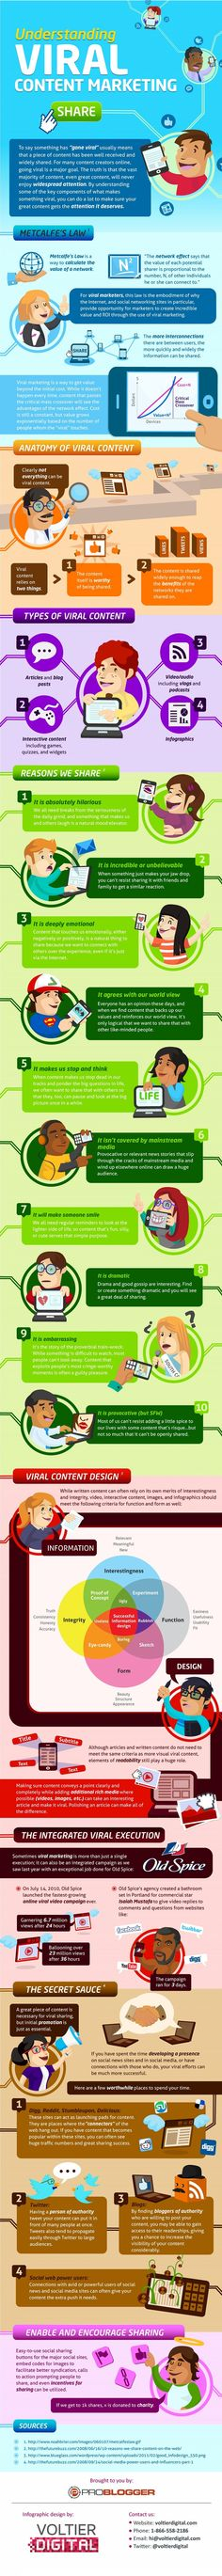 [Infographic] Understanding Viral Content Marketing - Viral marketing is, without any doubt, the most effective marketing tool ever. It is social media's ultimate measure of success and every.